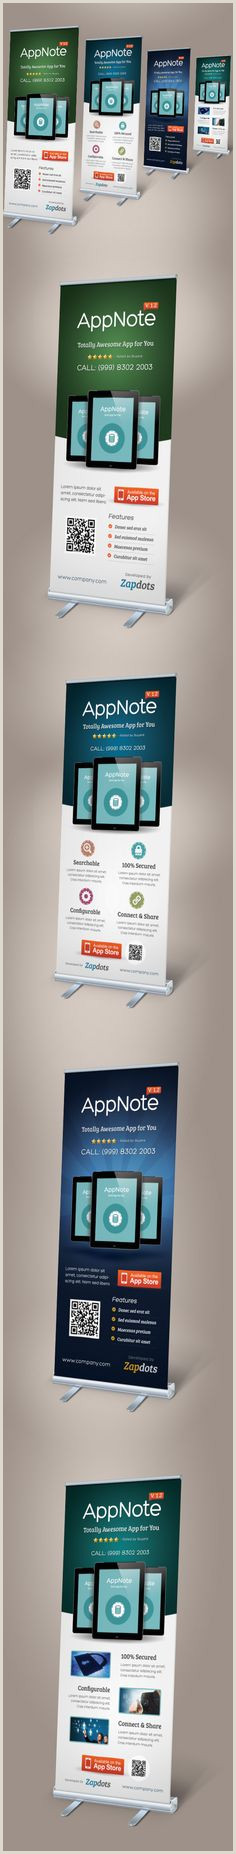 Large Pull Up Banners 30 Best Roll Up Banners Images